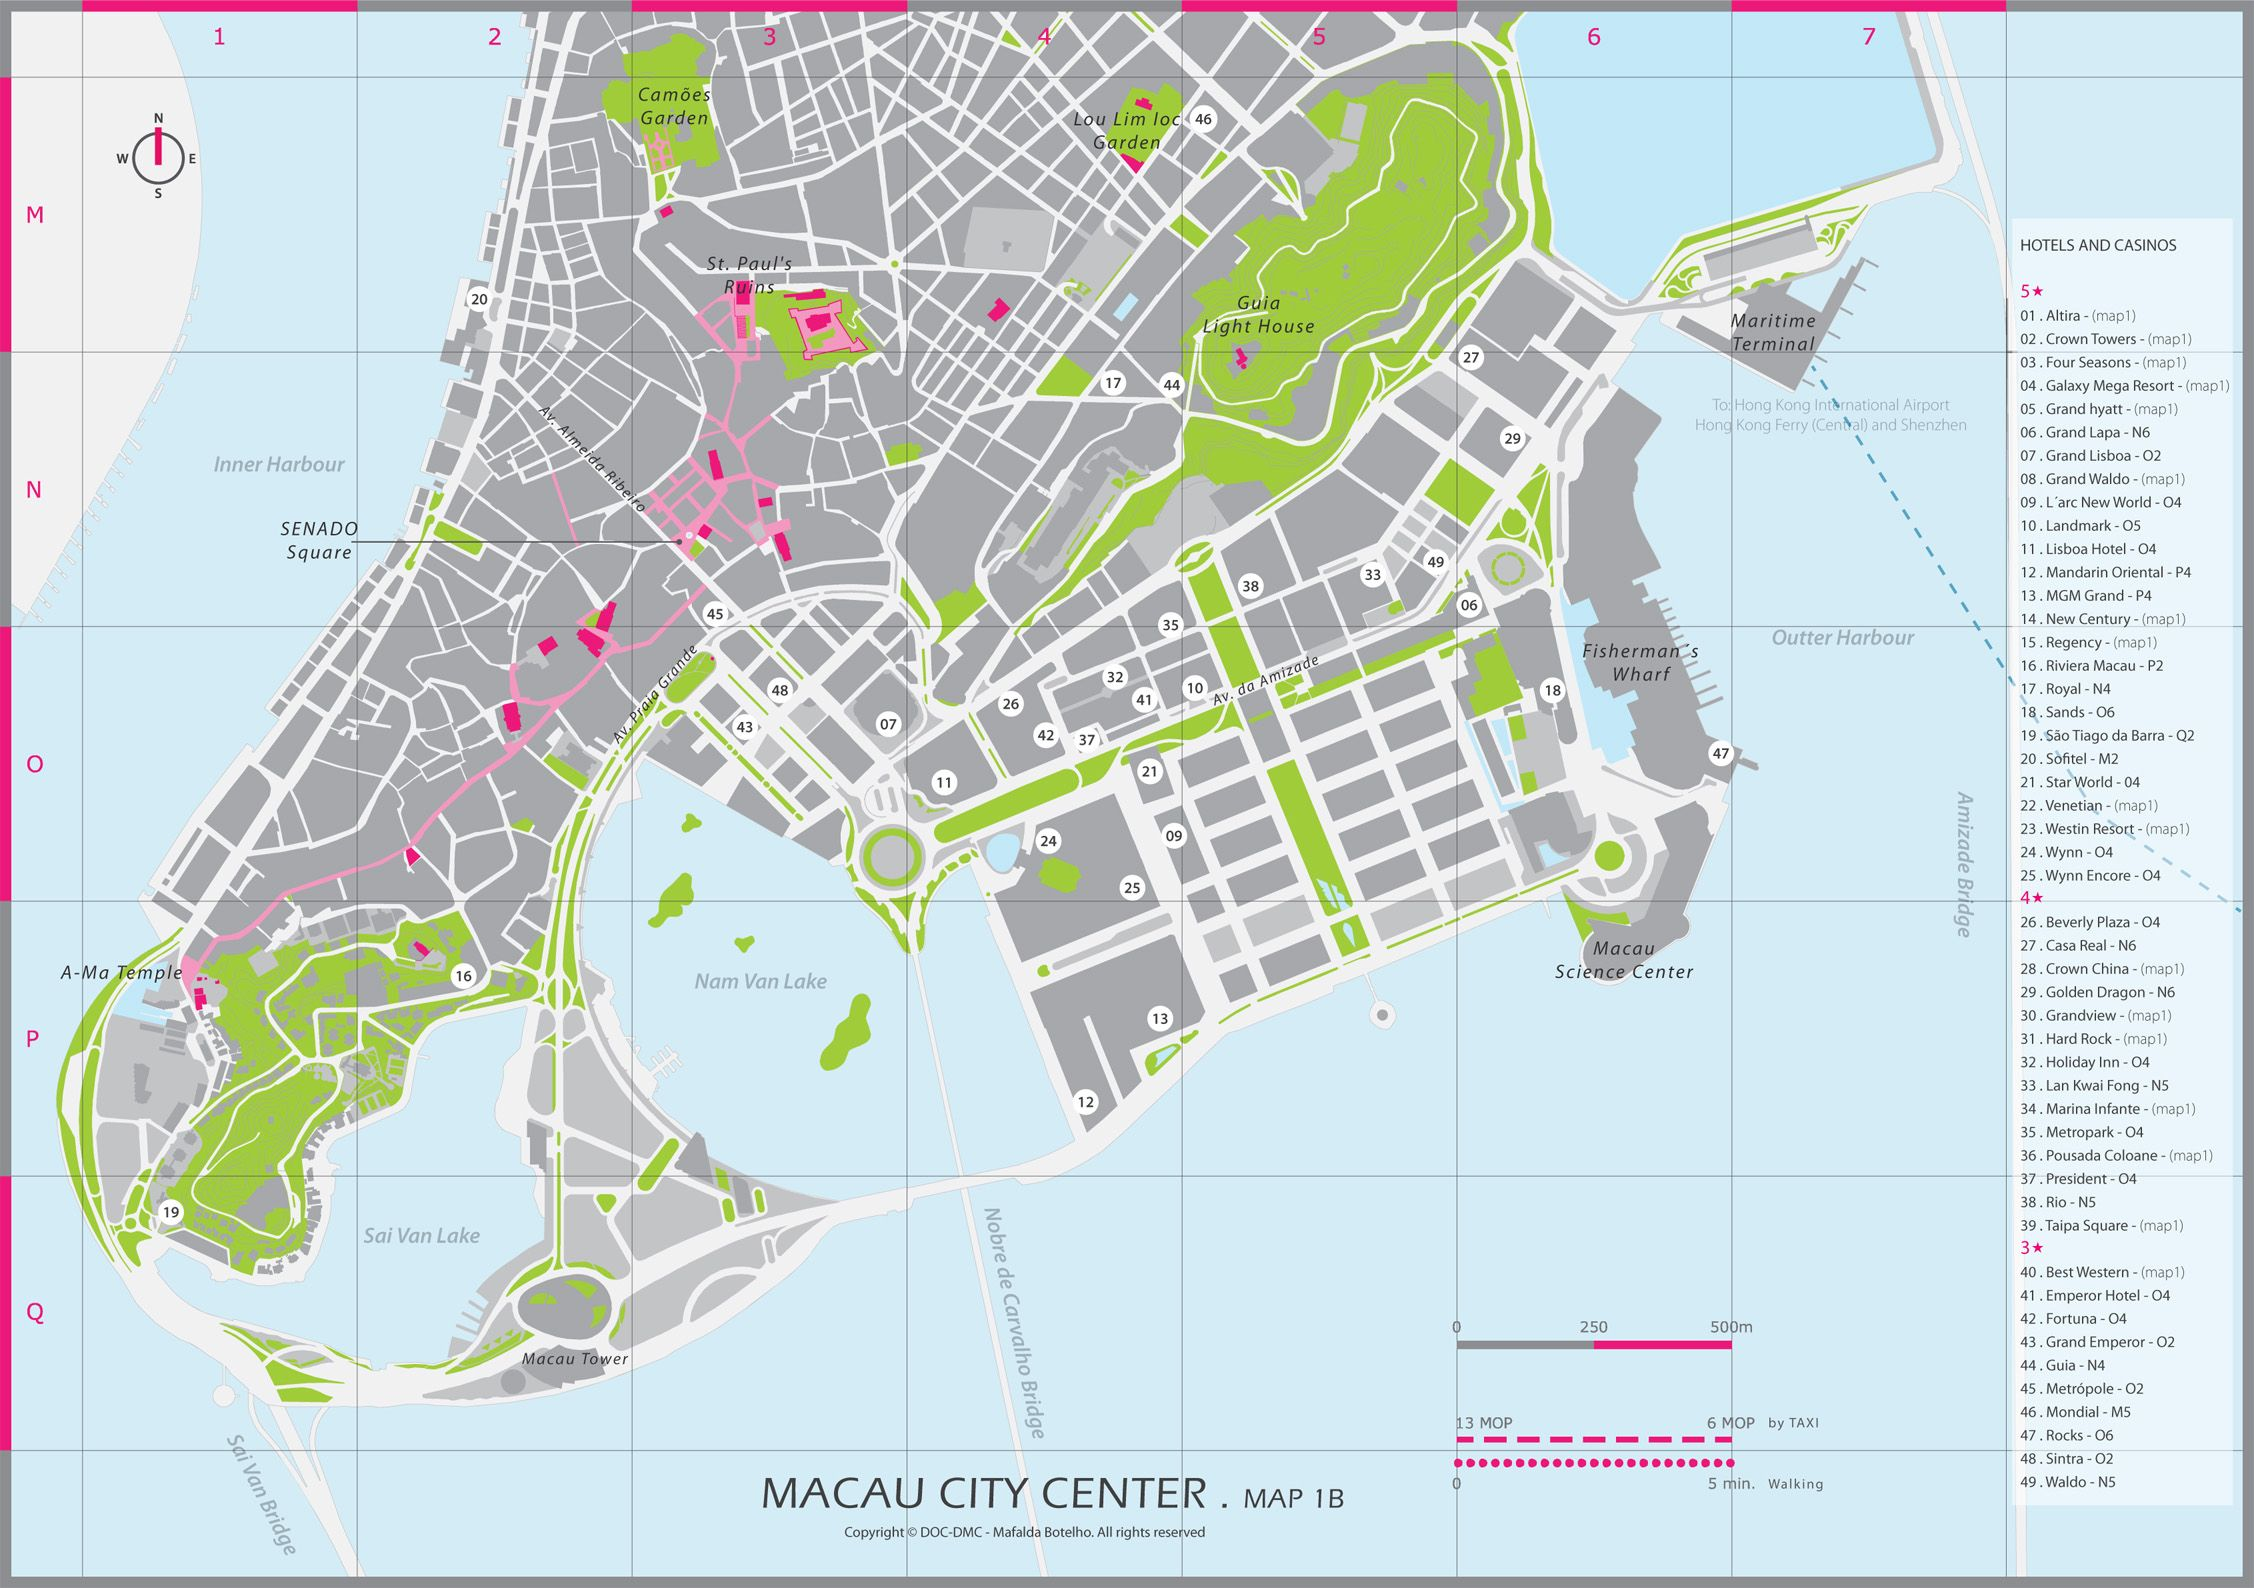 Macau City Center Map - Destination Management